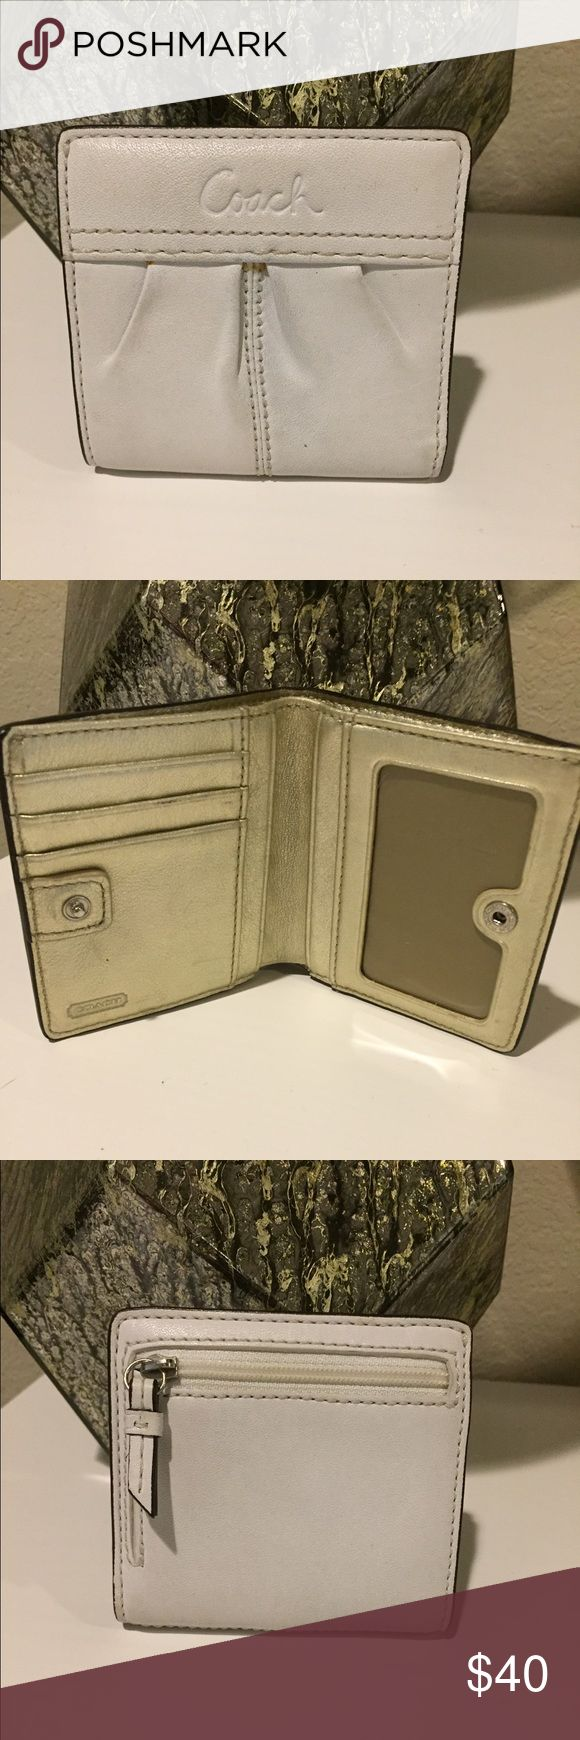 coach wholesale outlet online 45wr  Coach wallet Off white coach wallet Great condition! Goes with coach  purses in my